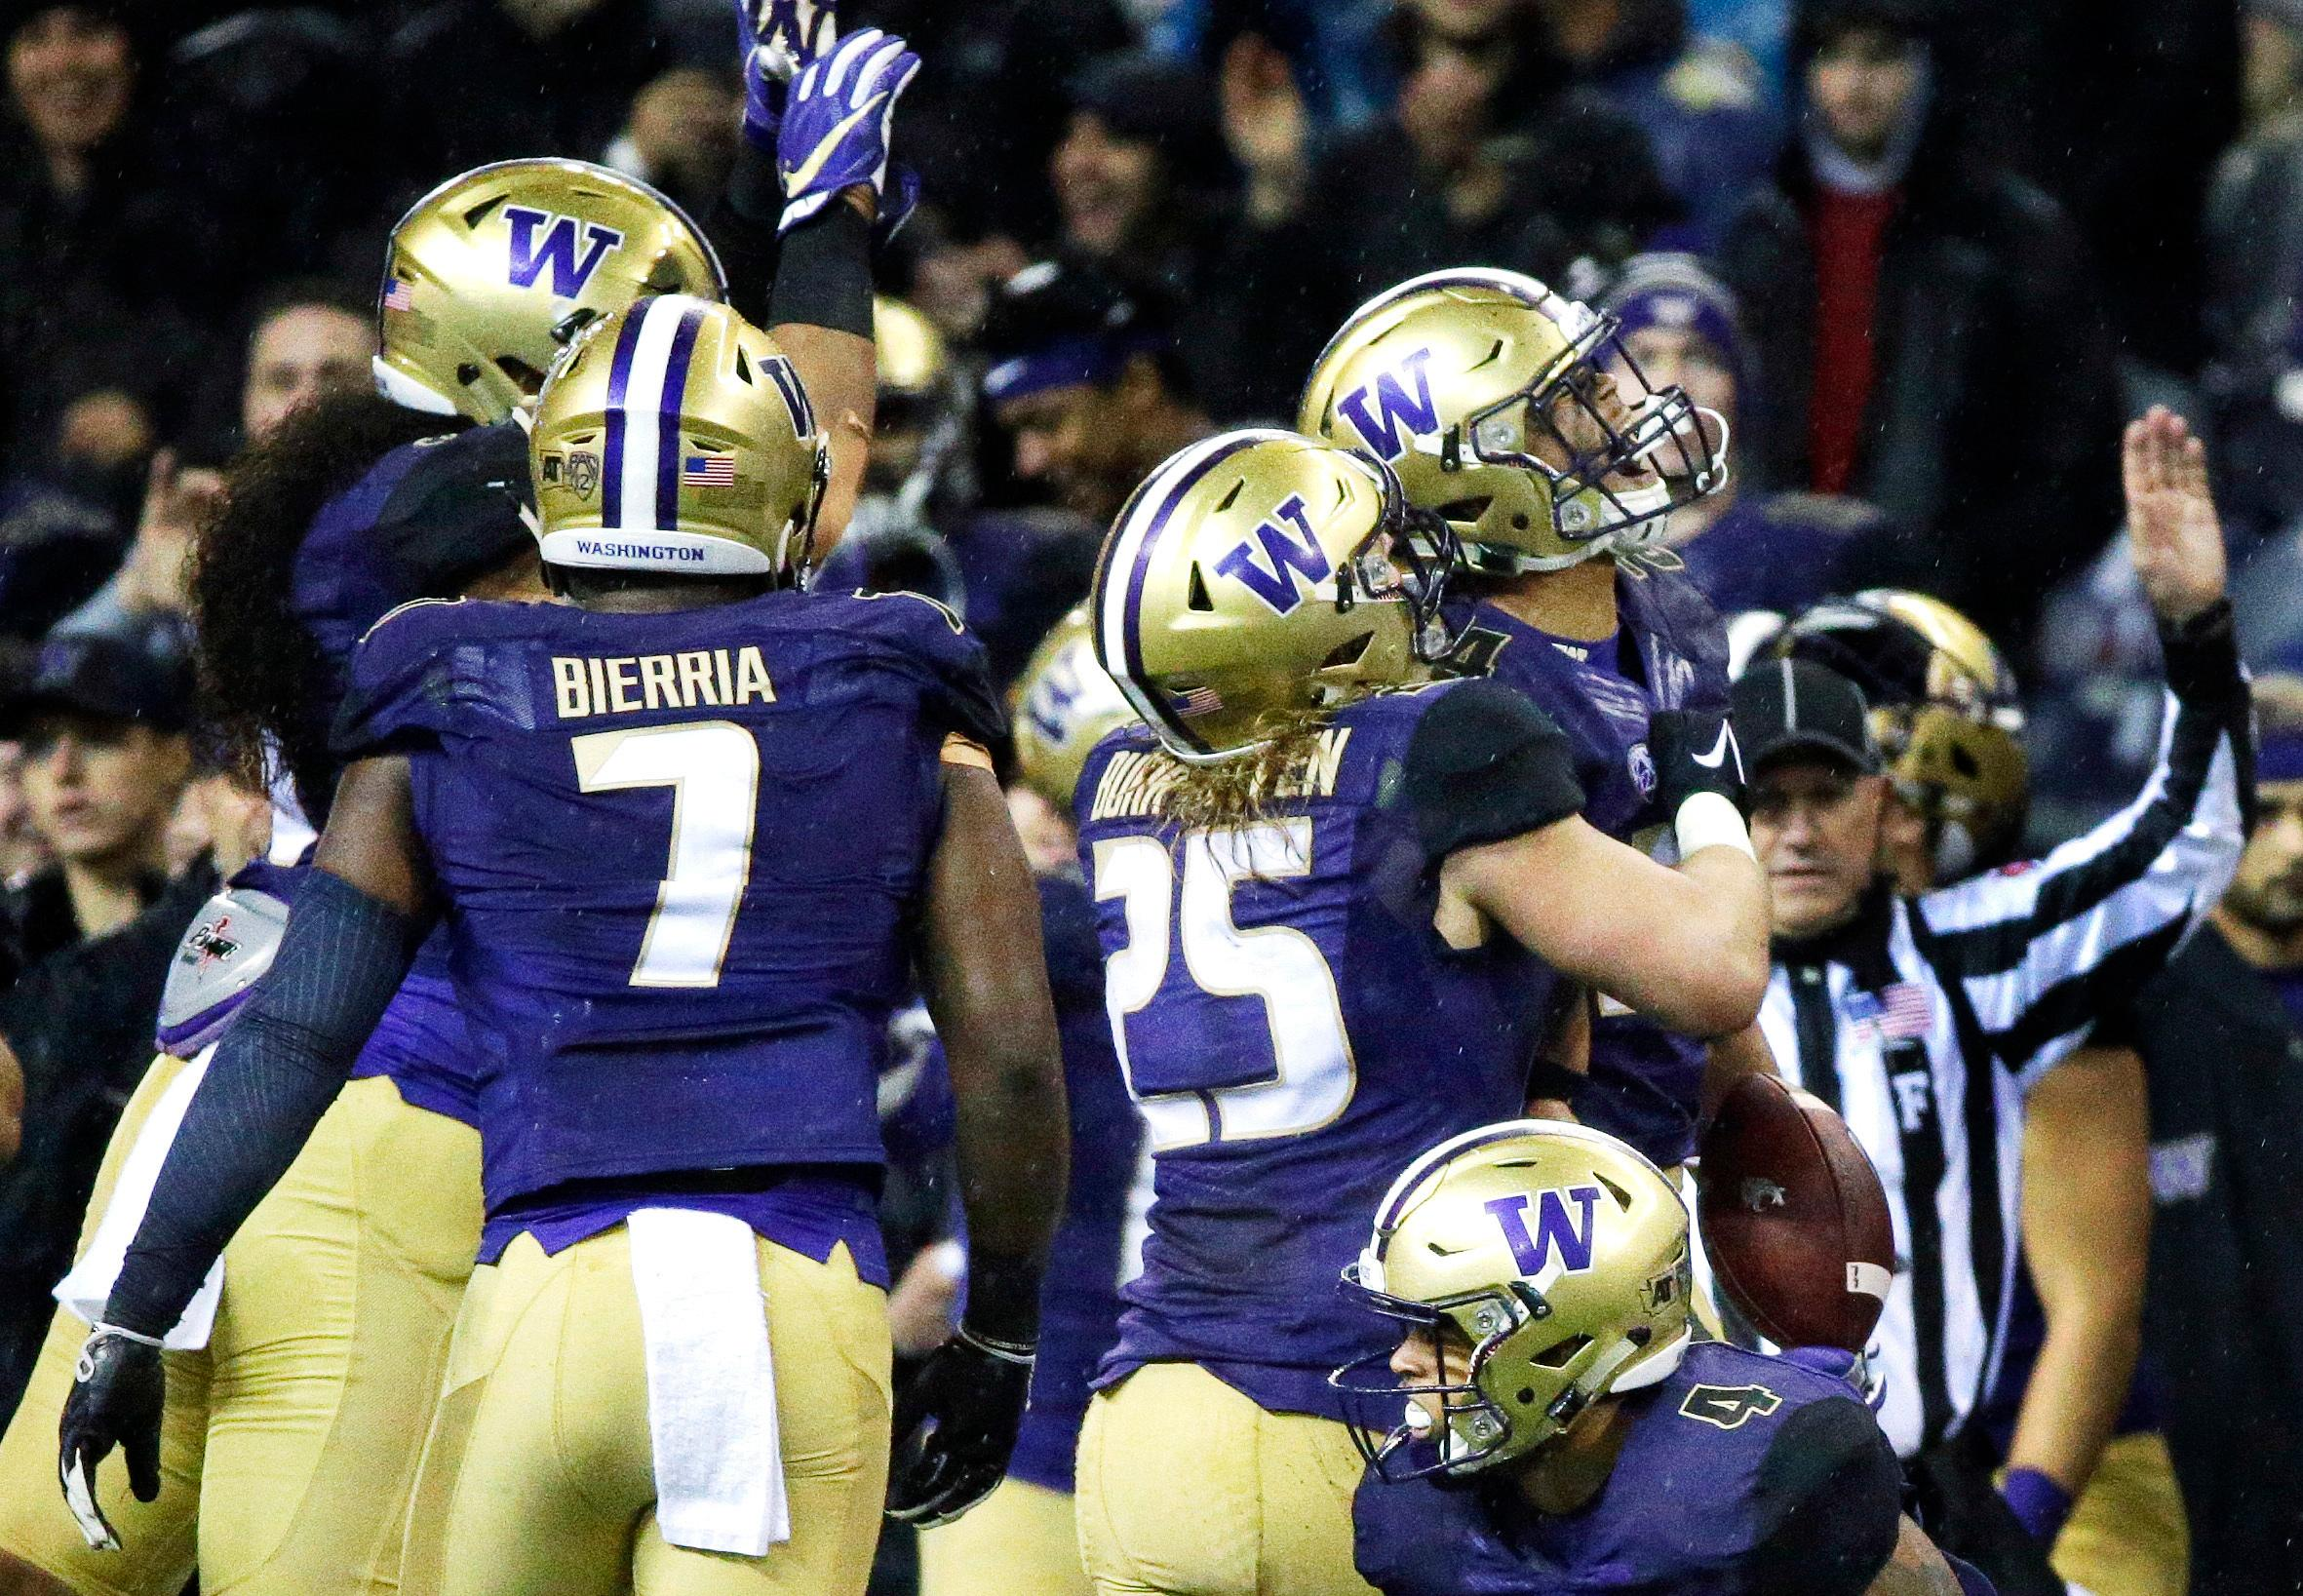 Washington defensive back Ezekiel Turner, upper right, celebrates with linebacker Ben Burr-Kirven (25) after Turner intercepted a pass during the first half of an NCAA college football game against Washington State, Saturday, Nov. 25, 2017, in Seattle. (AP Photo/Ted S. Warren)